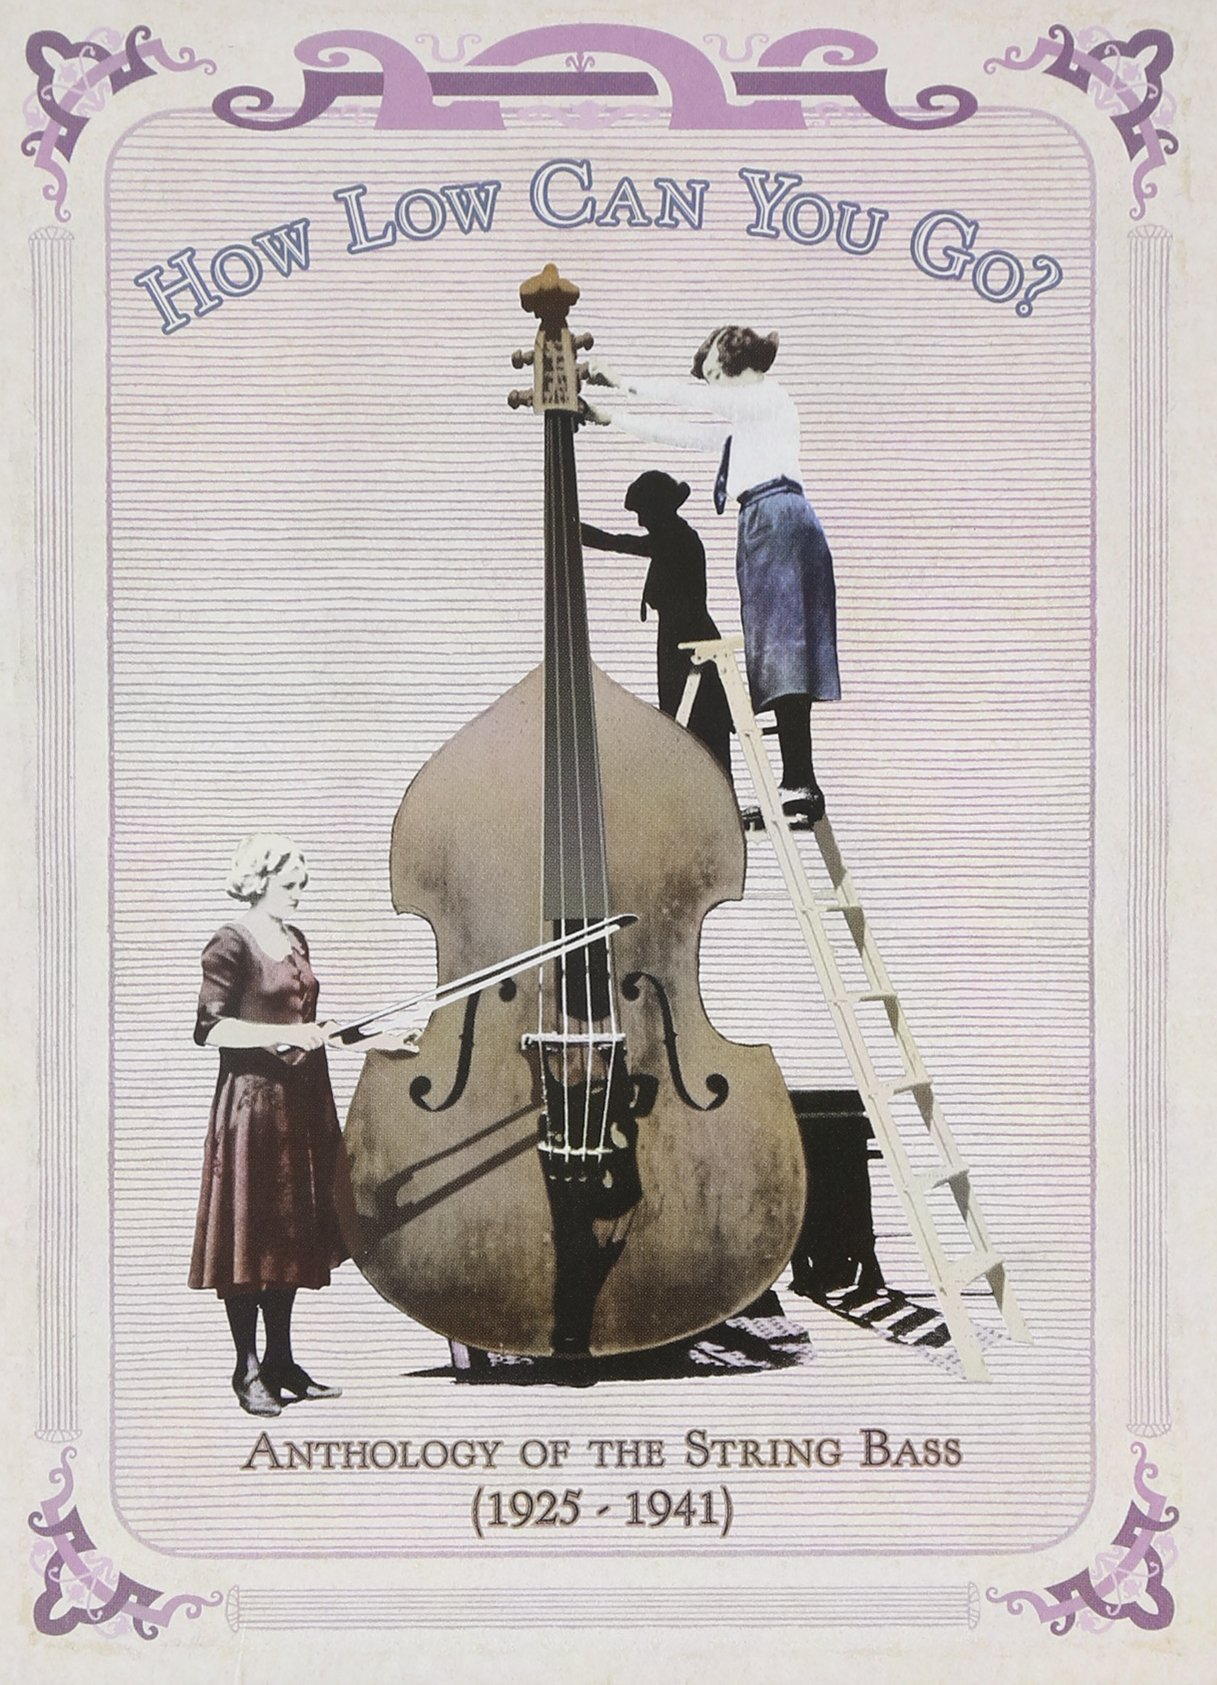 How Low Can You Go: Anthology of the String Bass (1925-1941)